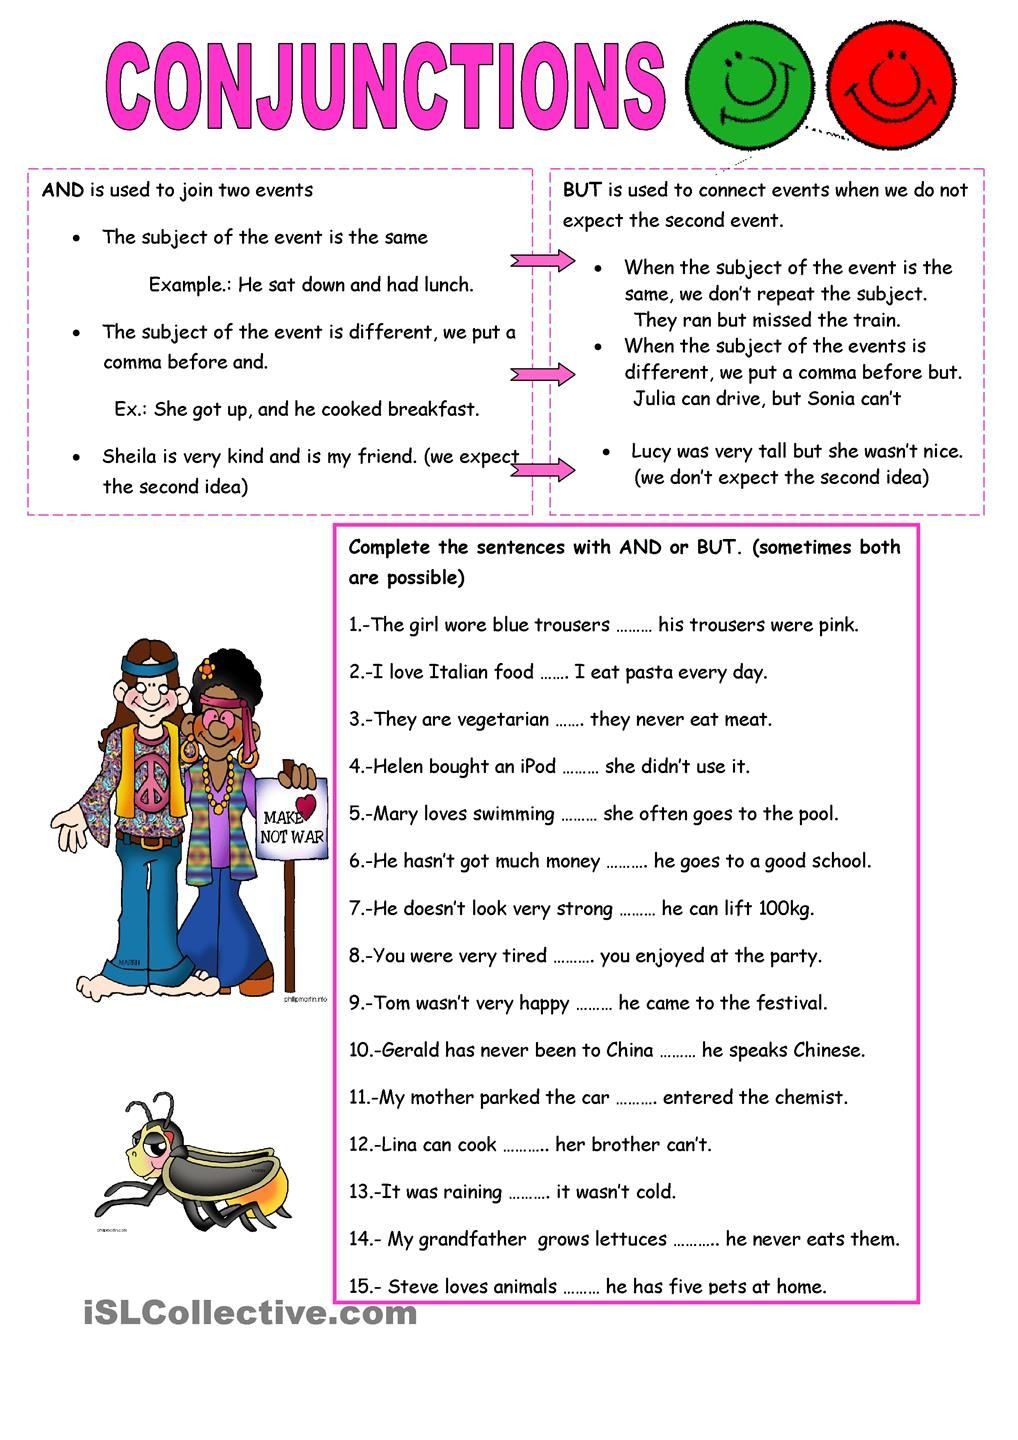 Conjunction Worksheets for Grade 3 Conjunctions and but